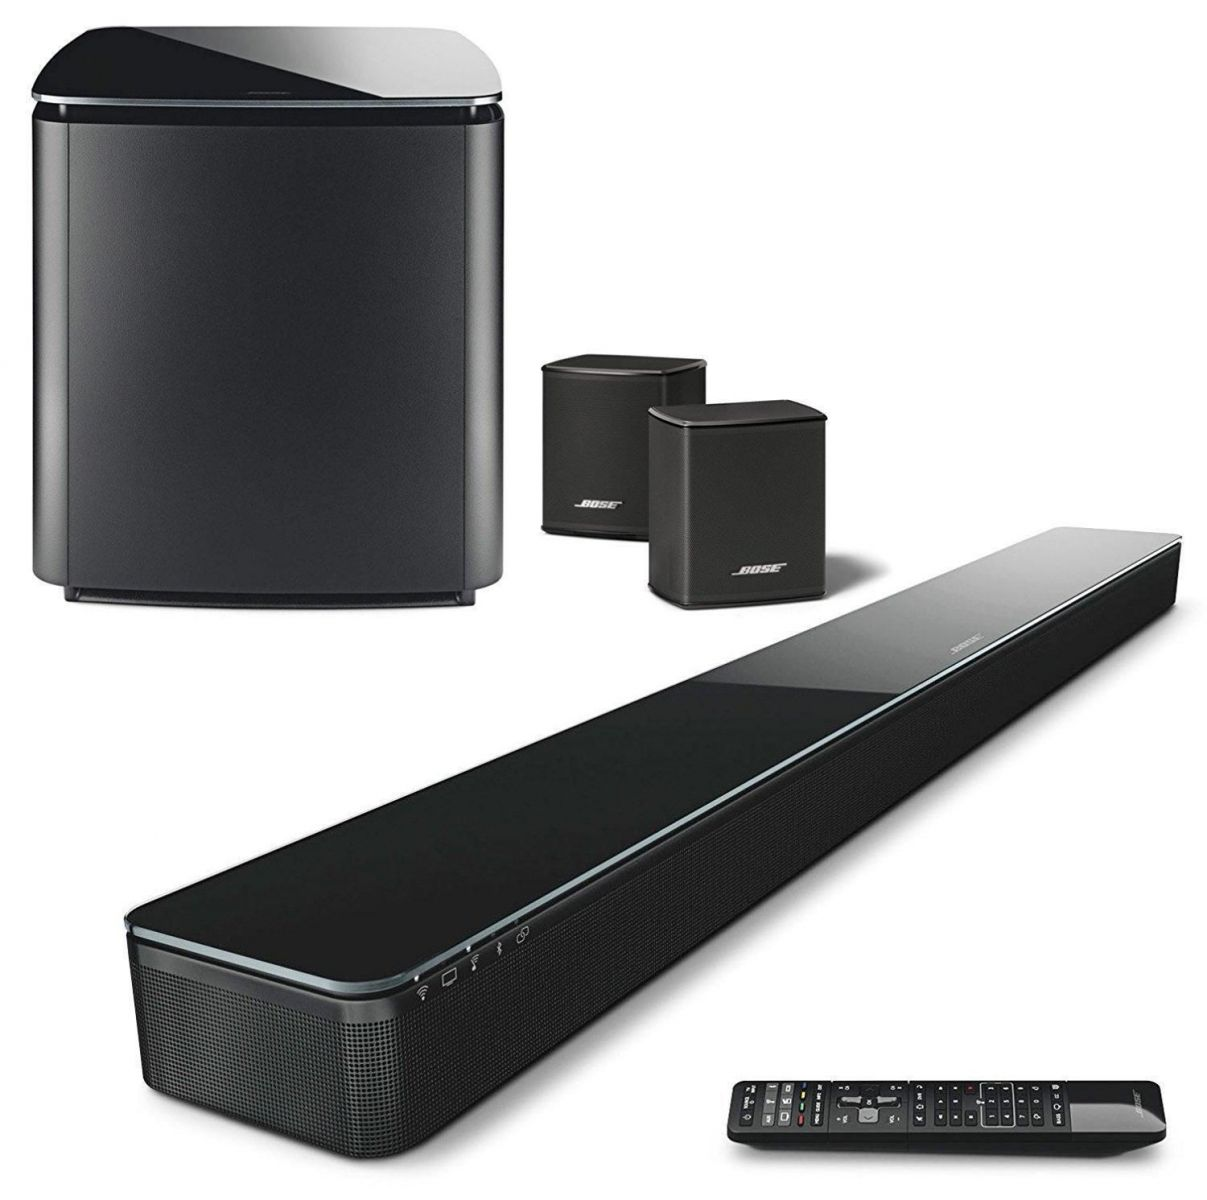 Dàn âm thanh 5.1 gồm Bose Soundtouch 300, Acoustimass 300, Virtually Invisible 300